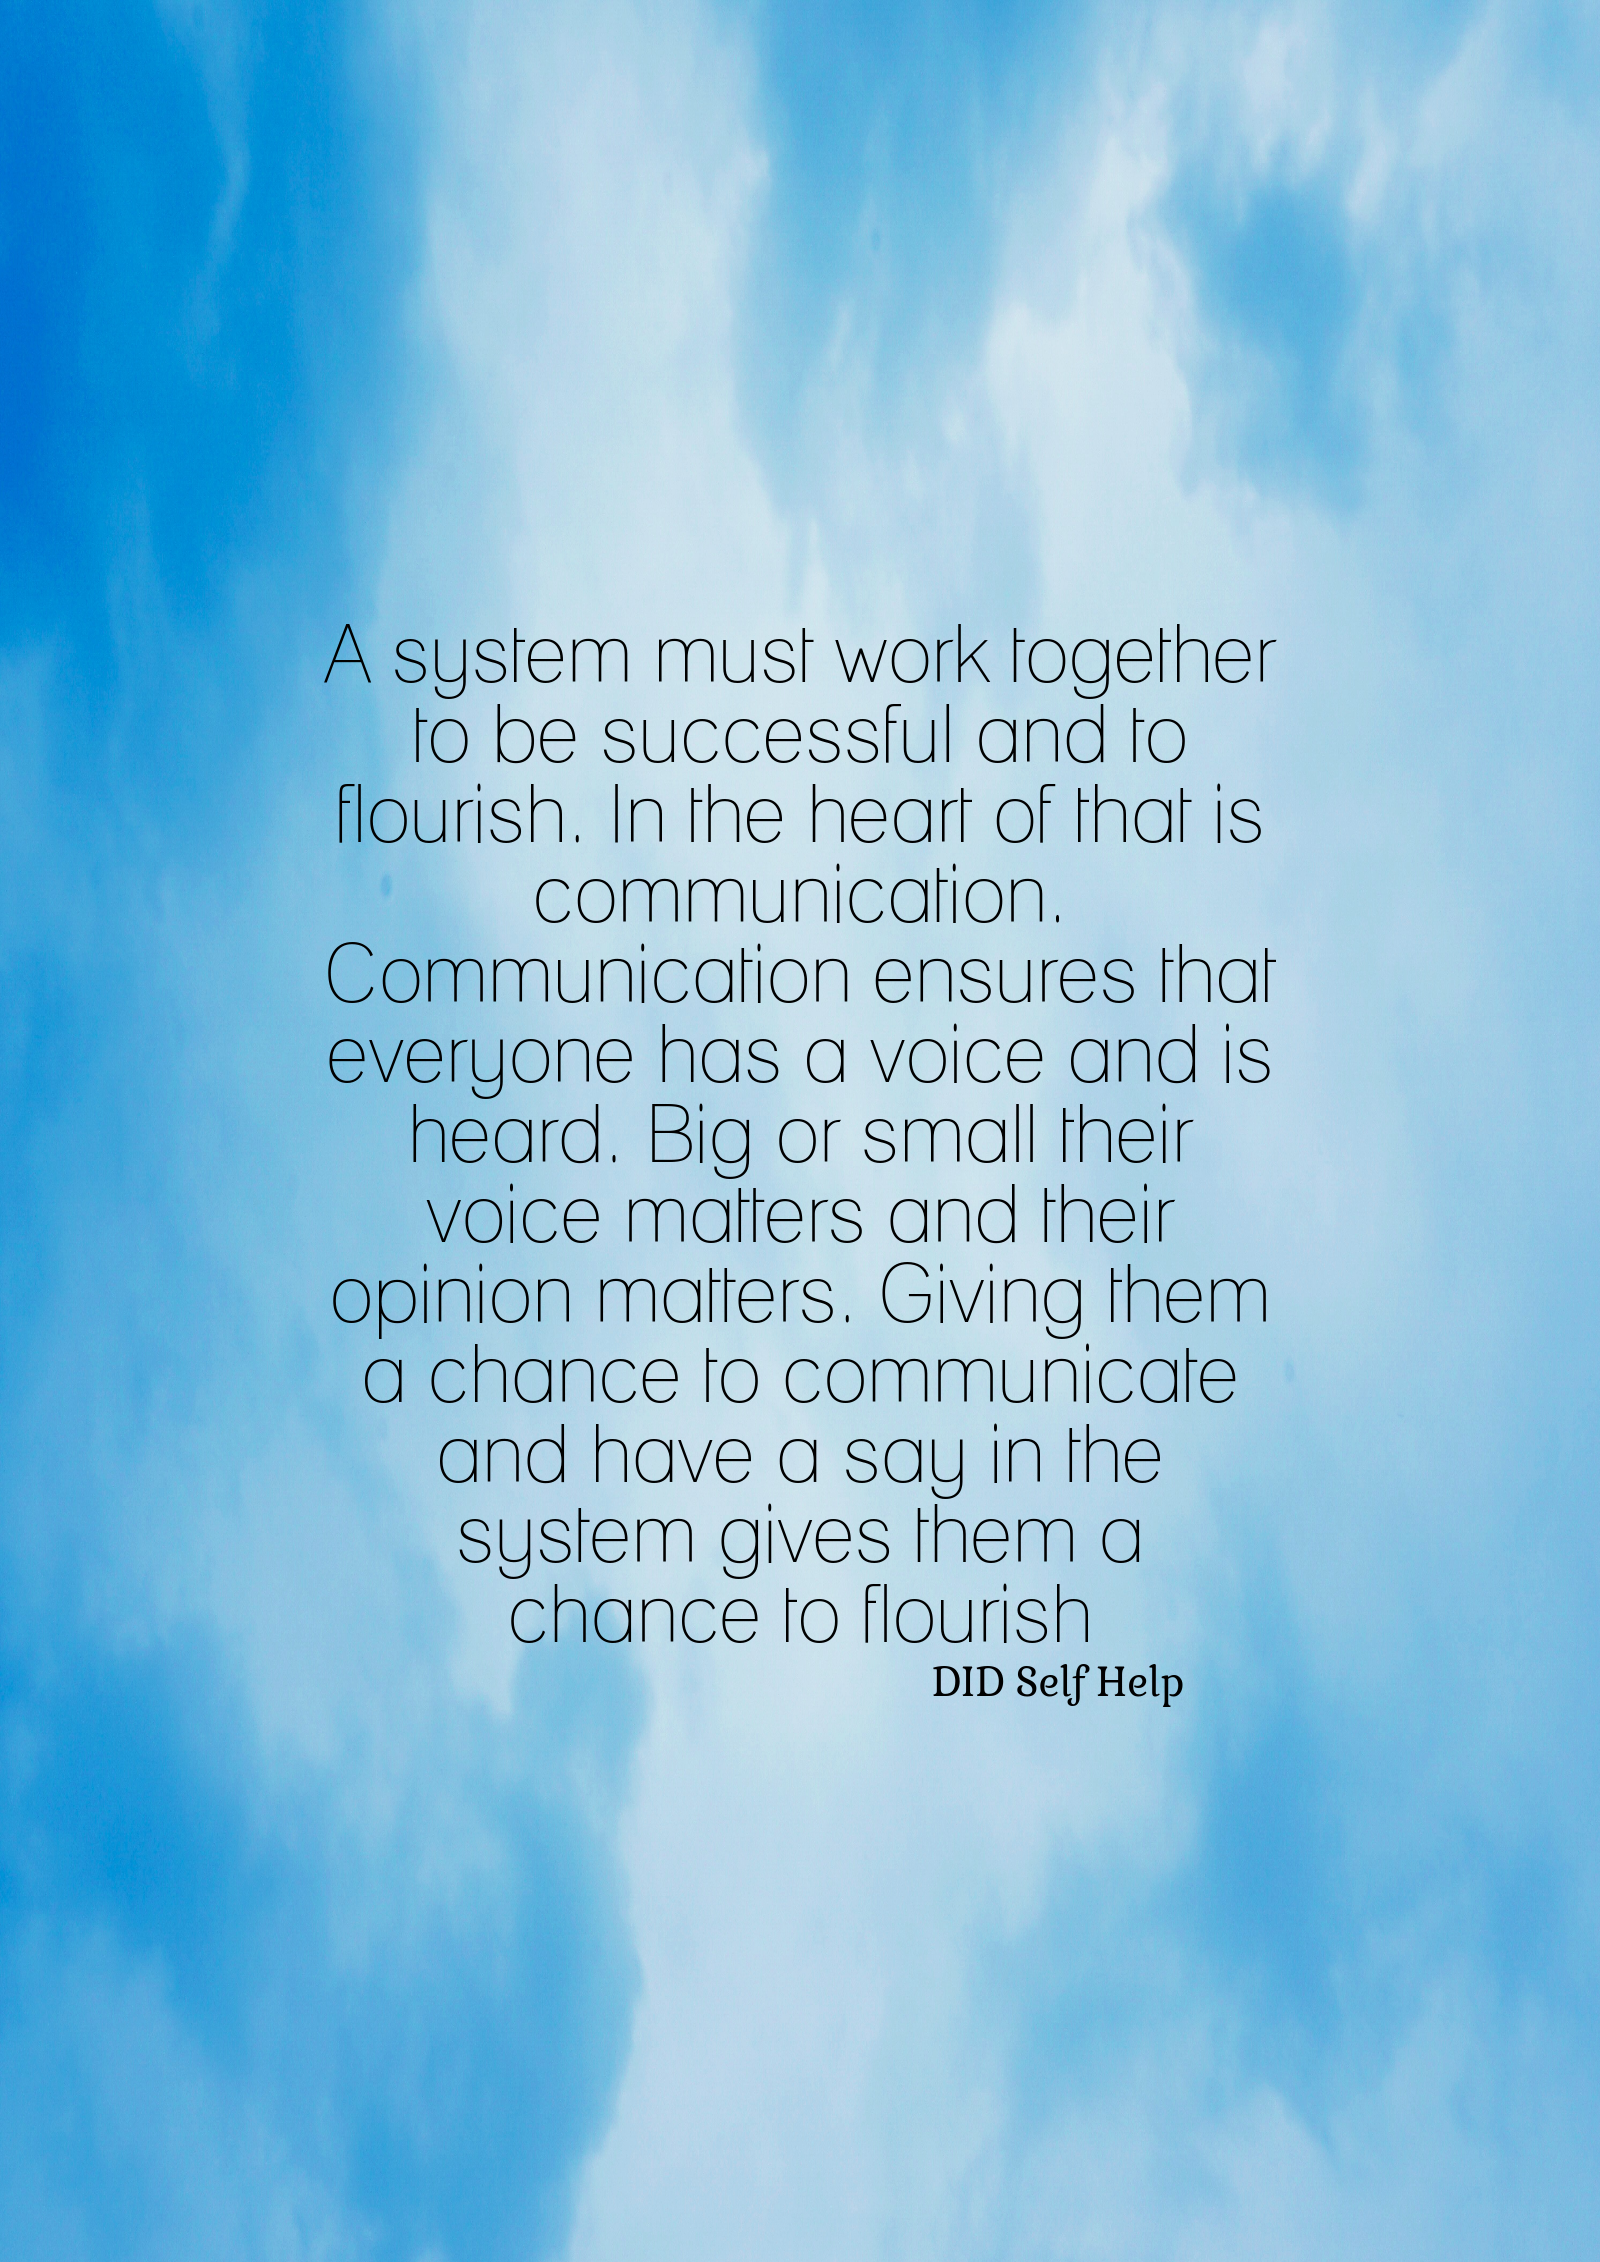 """A blue poster that says """"A system, must work together to be successful and flourish. In the heart of that is communication. Communication ensures that everyone has a voice and is heard. Big or small their voice matters. Giving them a chance to communicate and have a say in the system gives them a chance to flourish."""""""